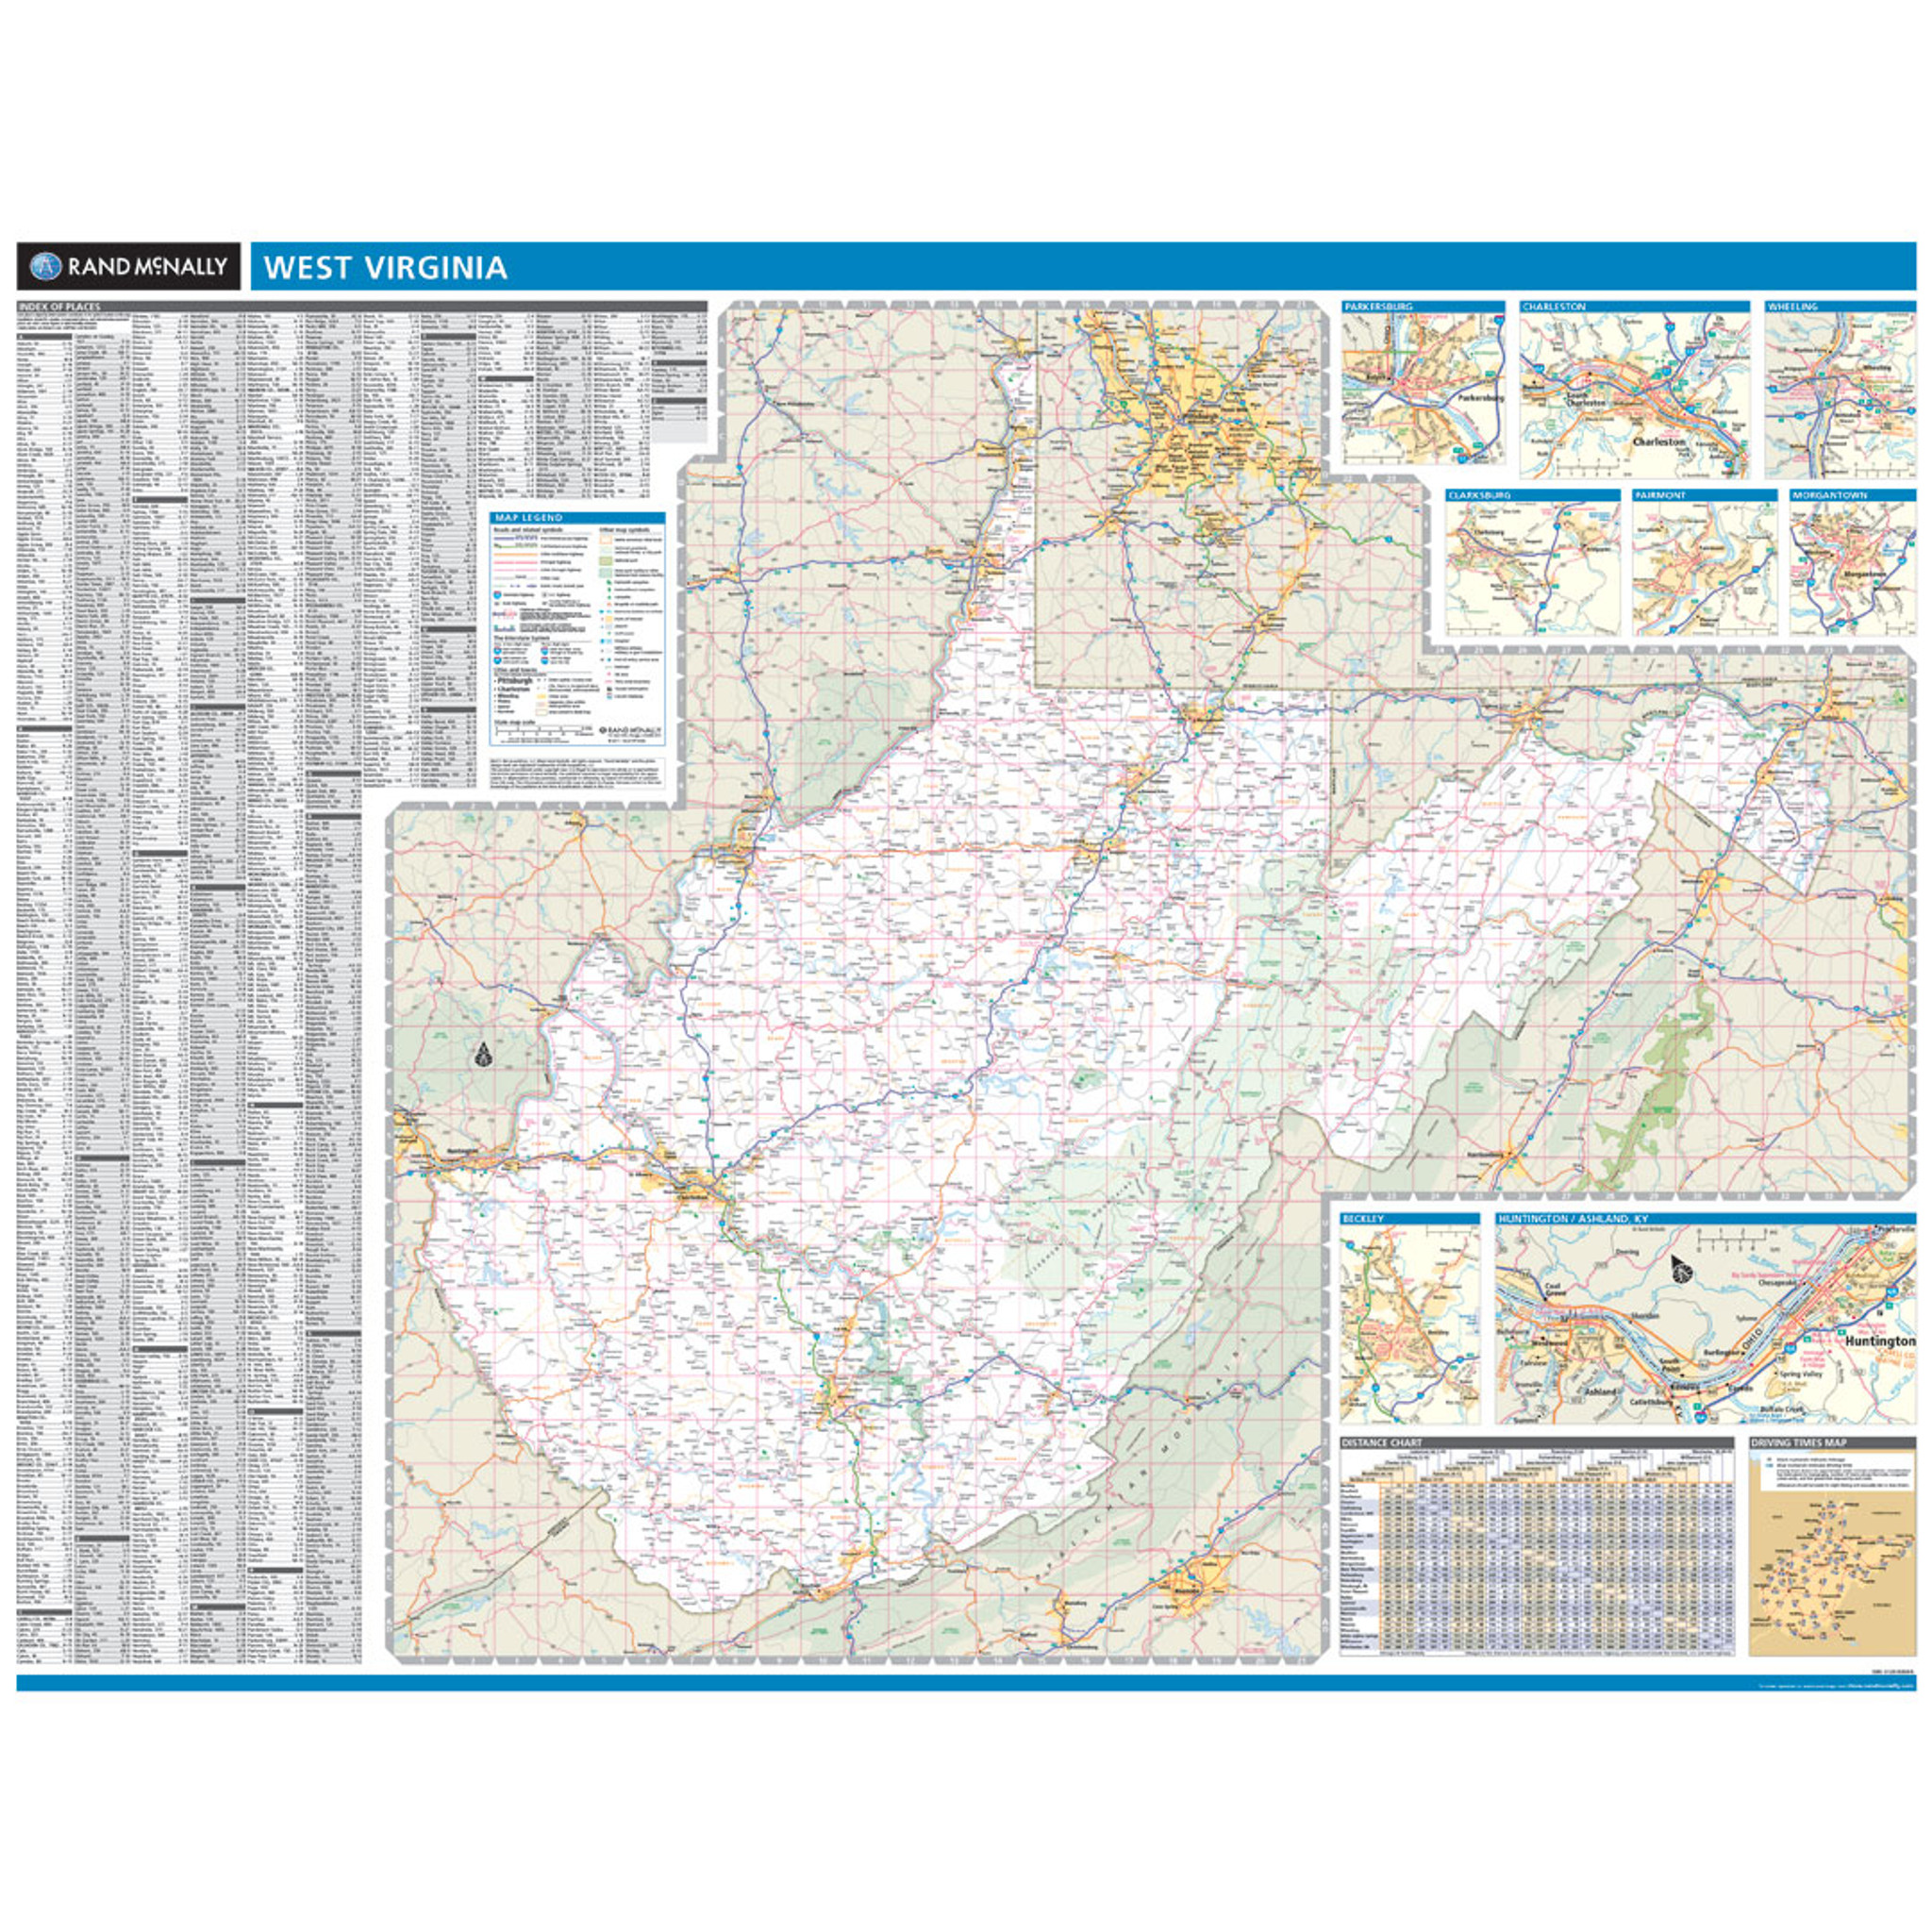 Rand McNally West Virginia State Wall Map